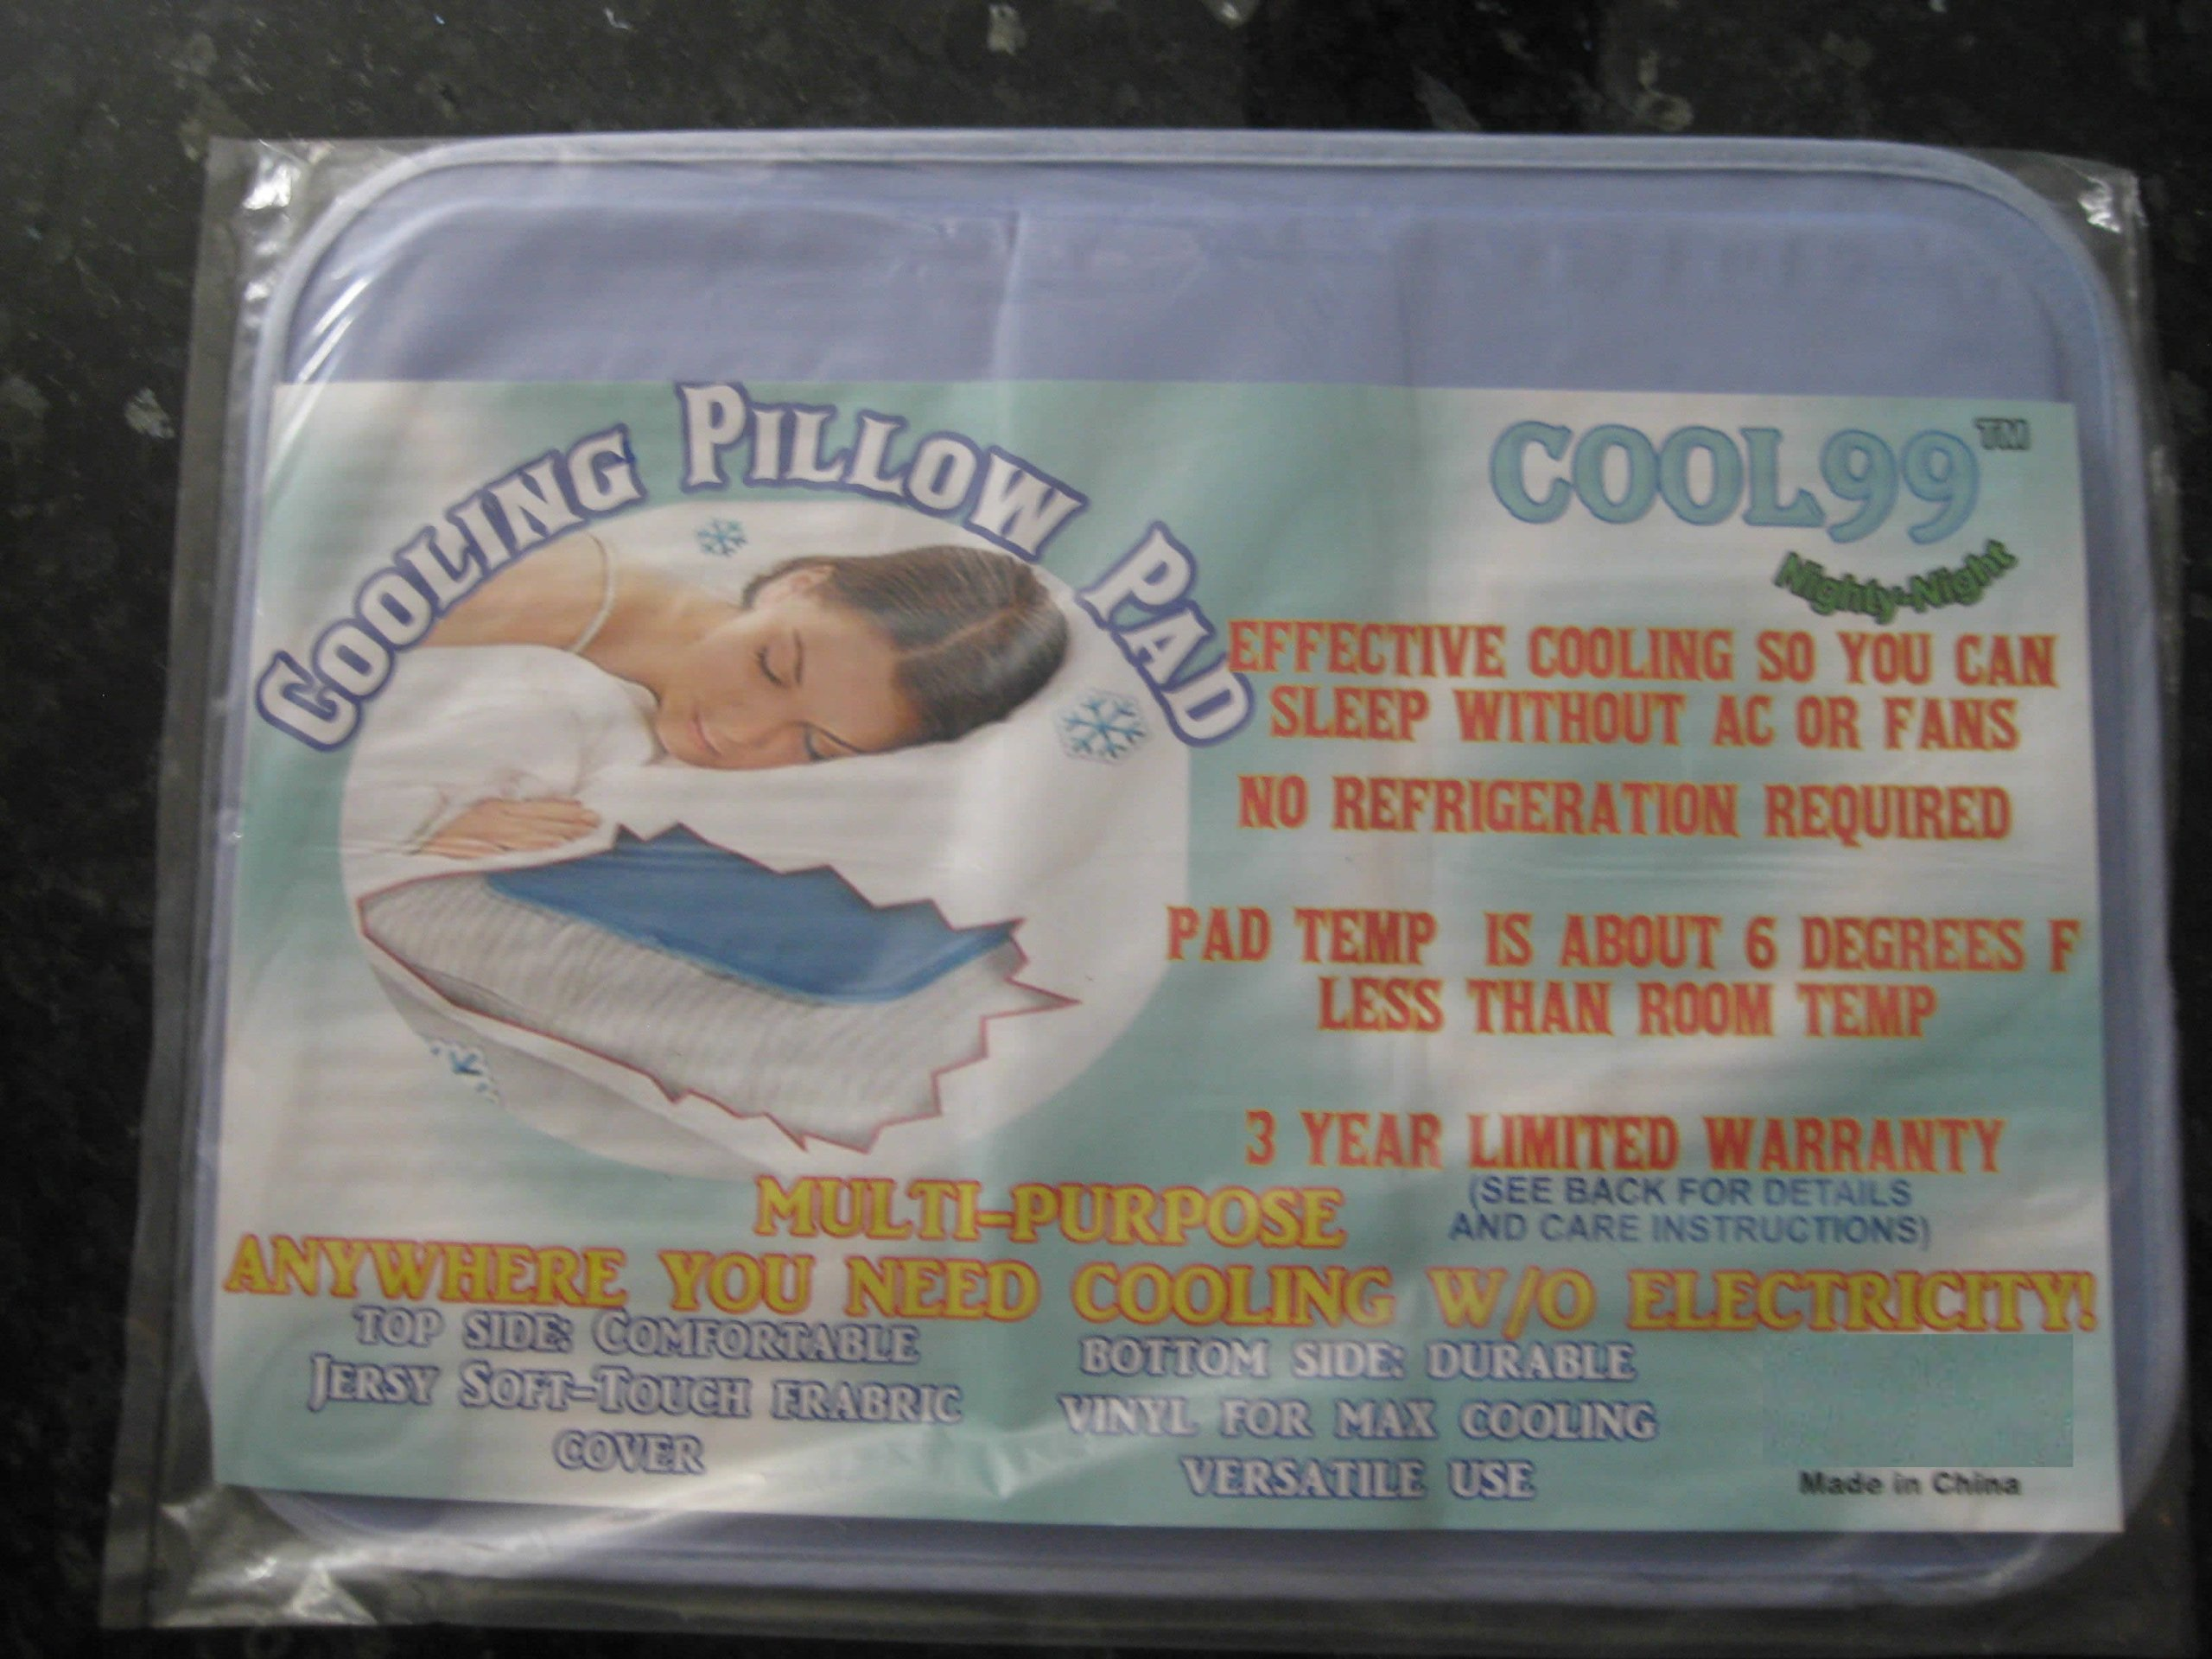 Cool99(TM) Cooling Pillow Pad